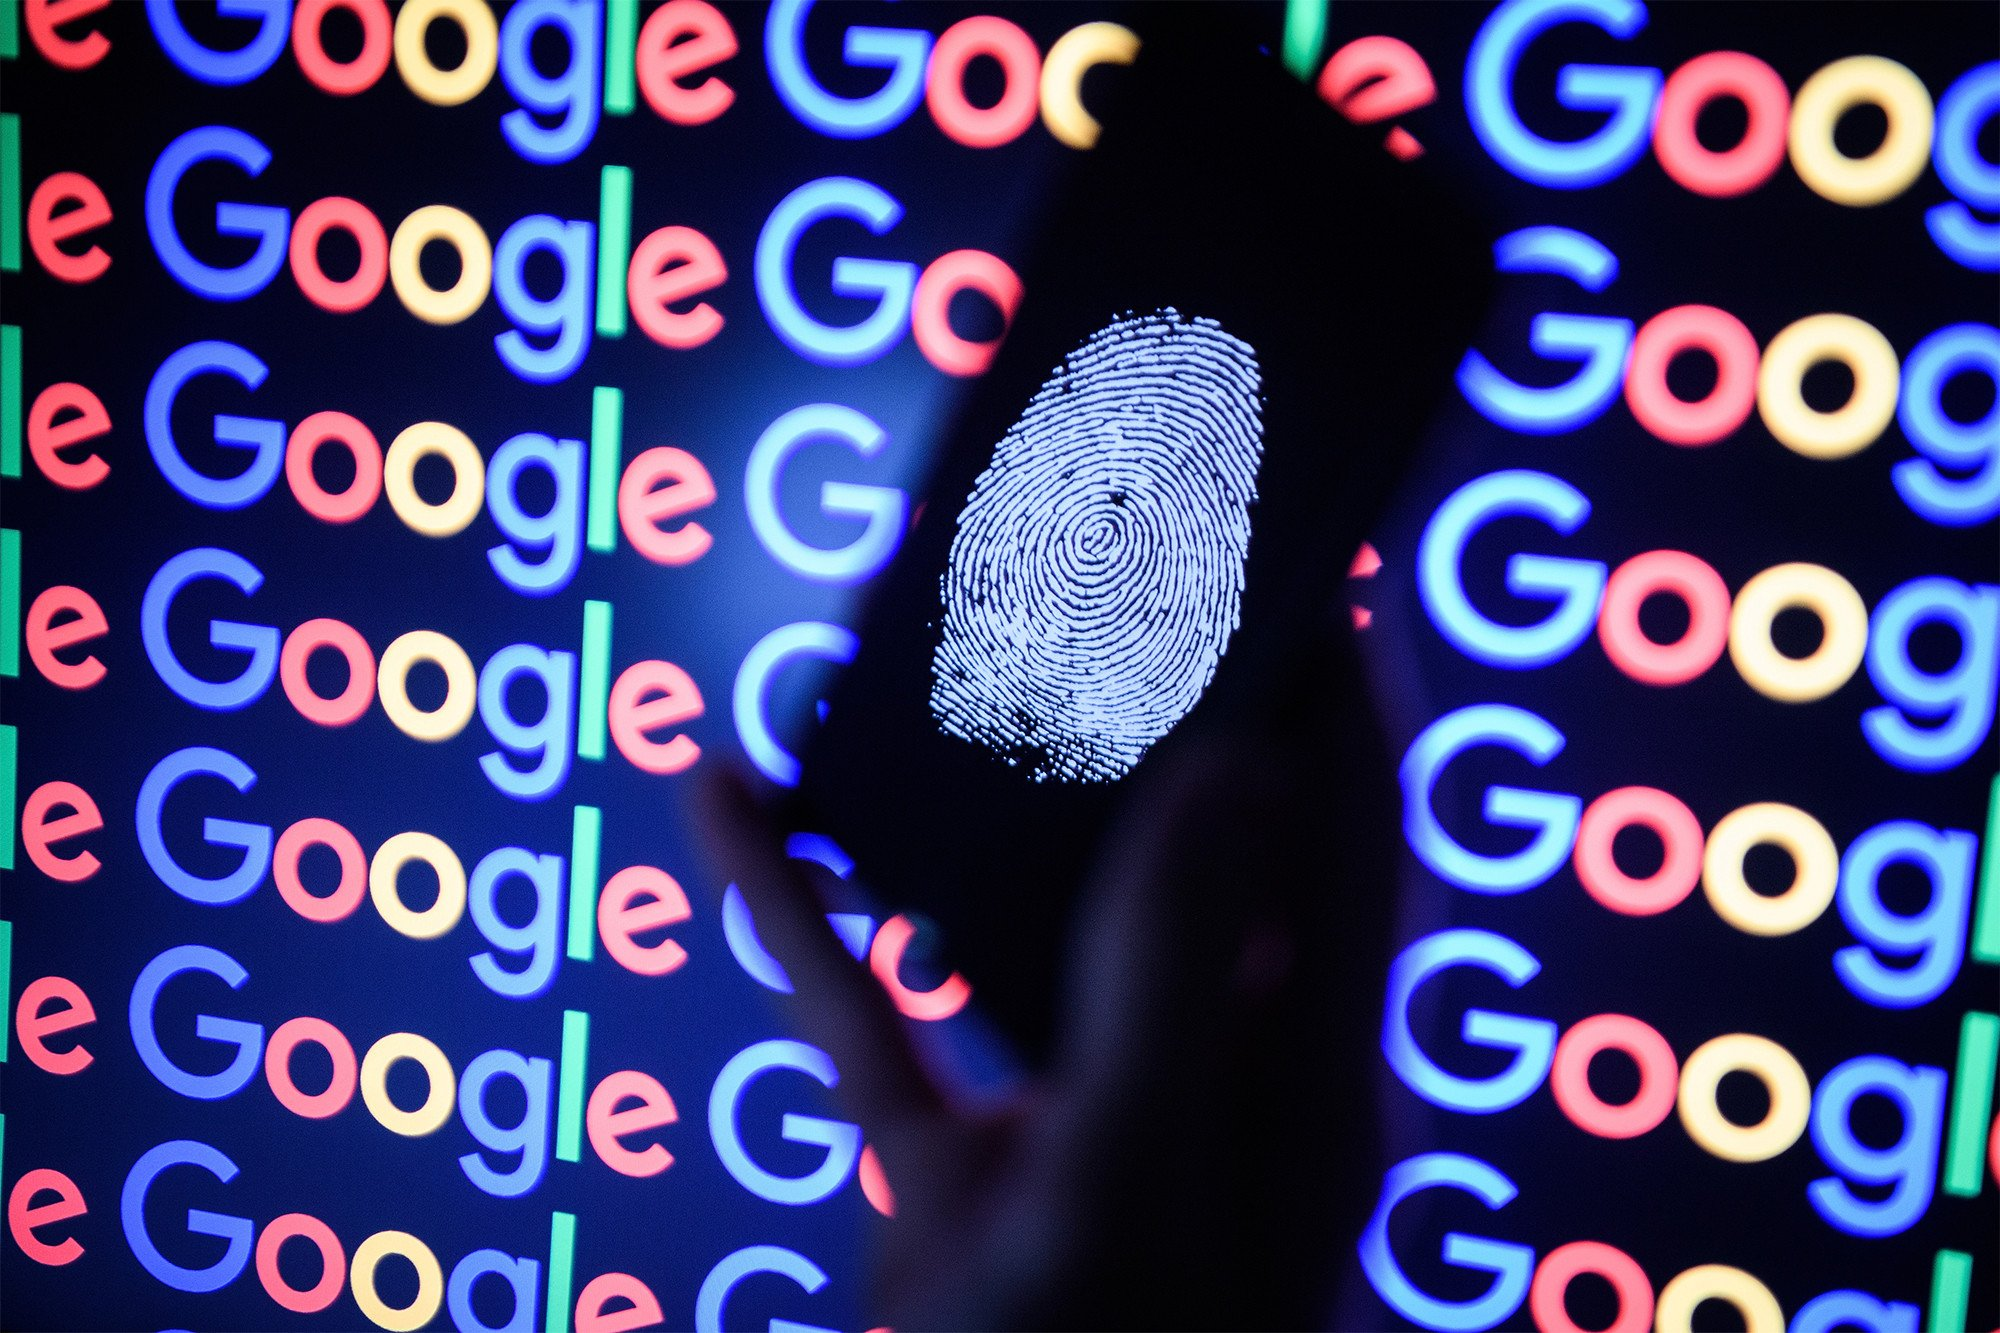 Google hoards way more of your personal data than Facebook